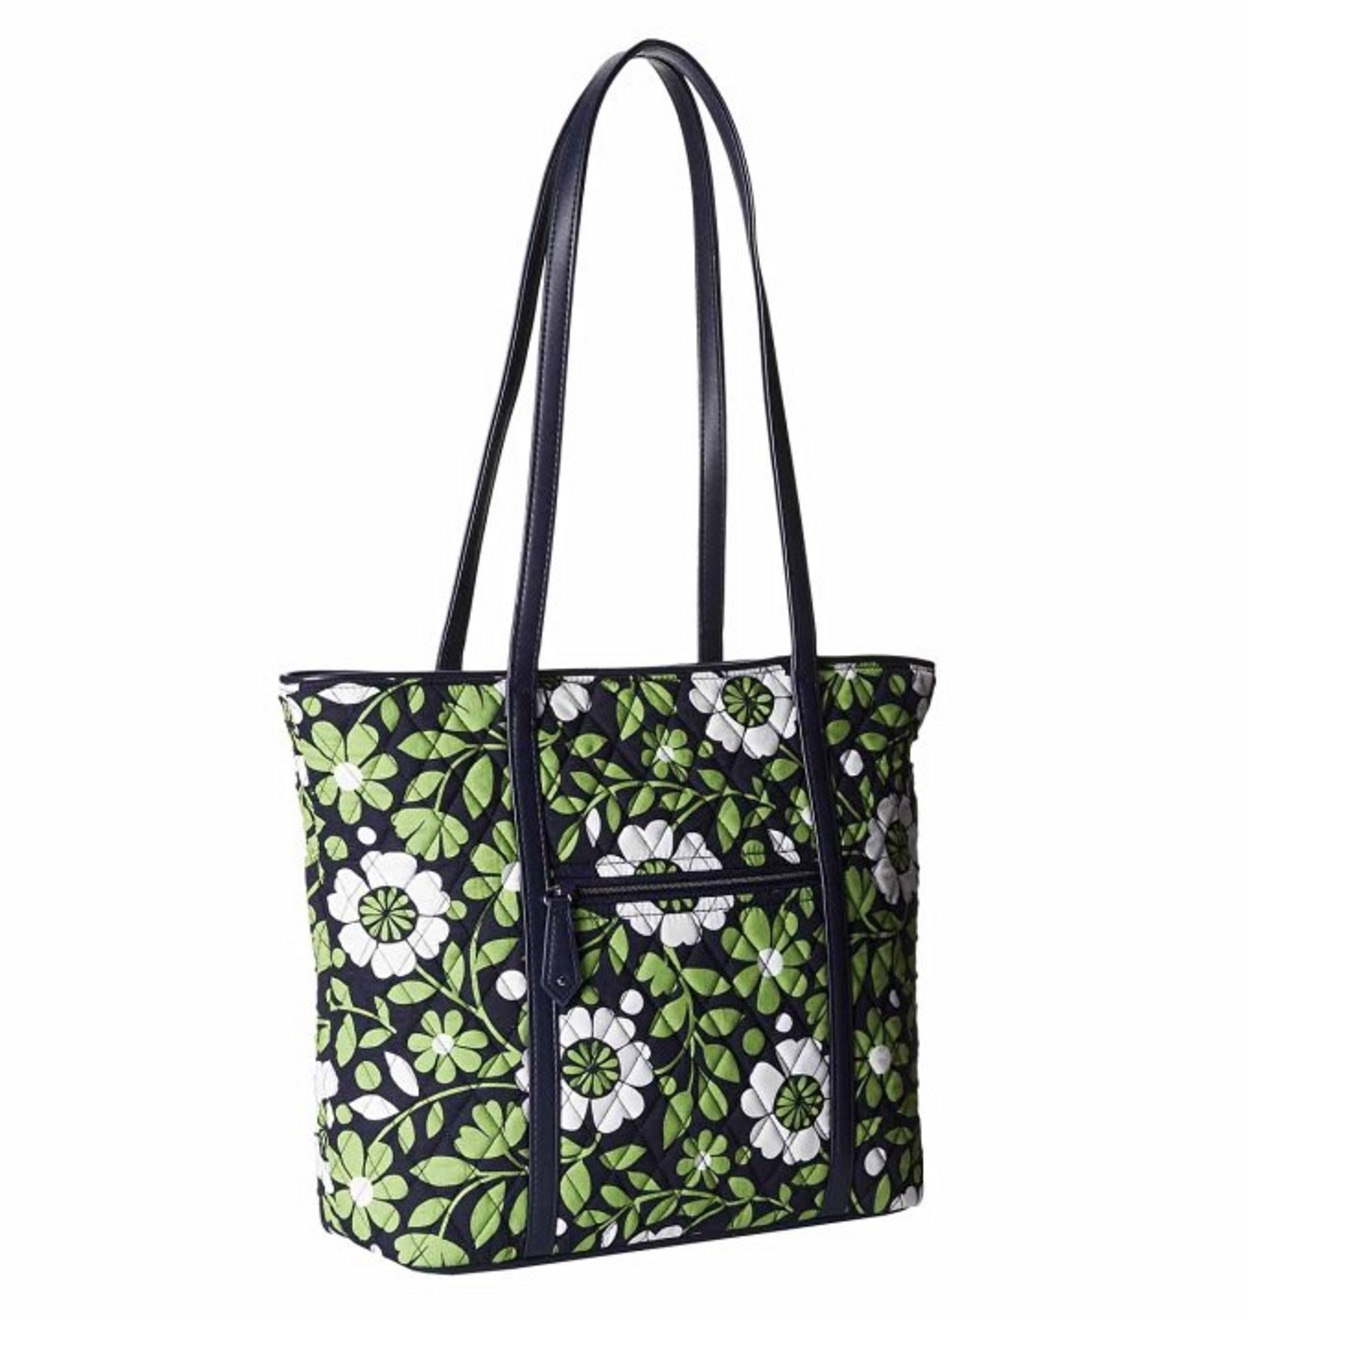 Vera Bradley Trimmed Vera Tote in Lucky You with Navy Interior